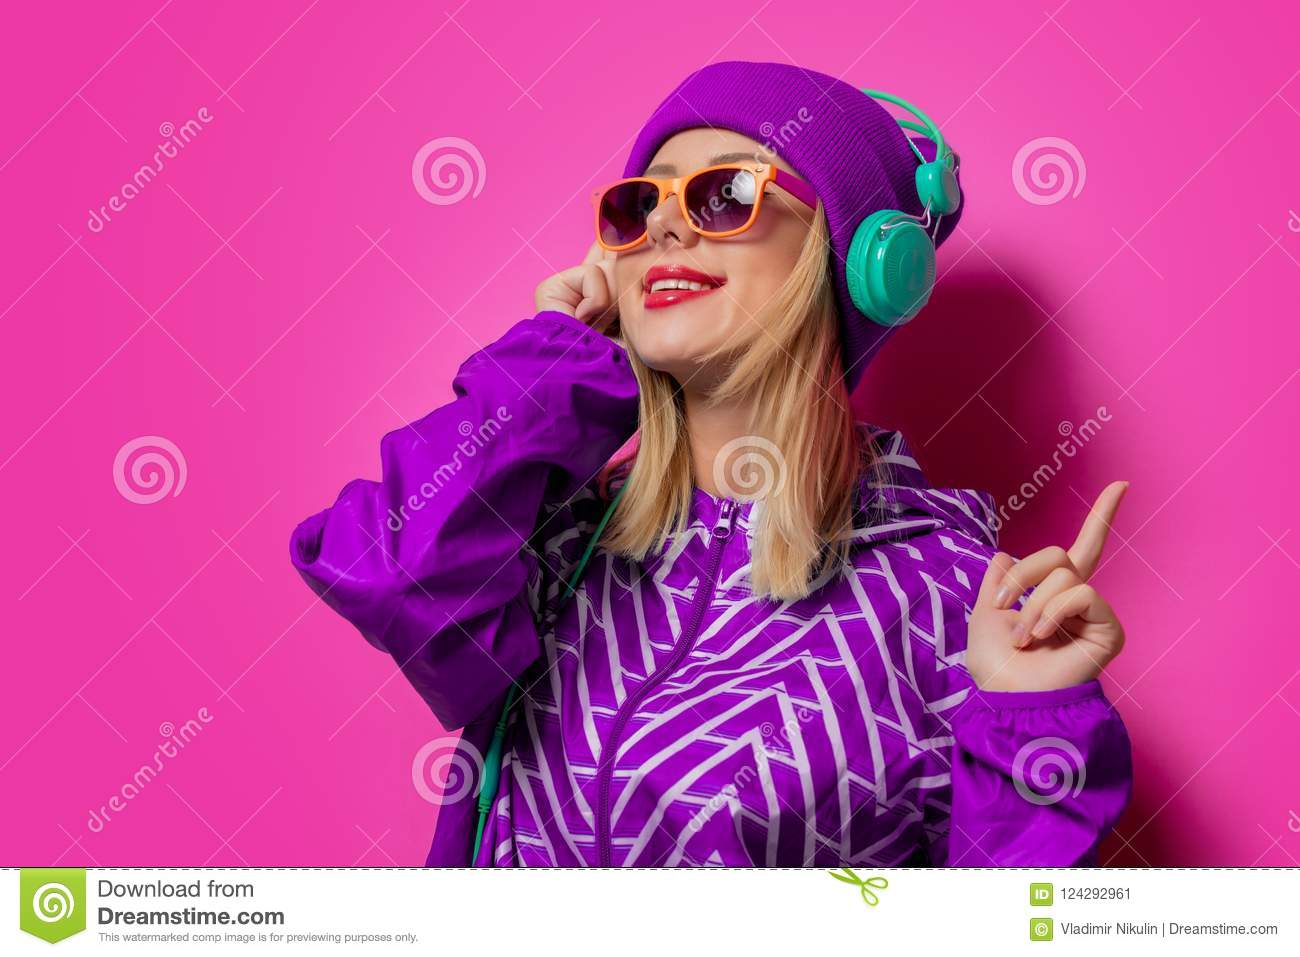 Young girl with headphones in sports jacket